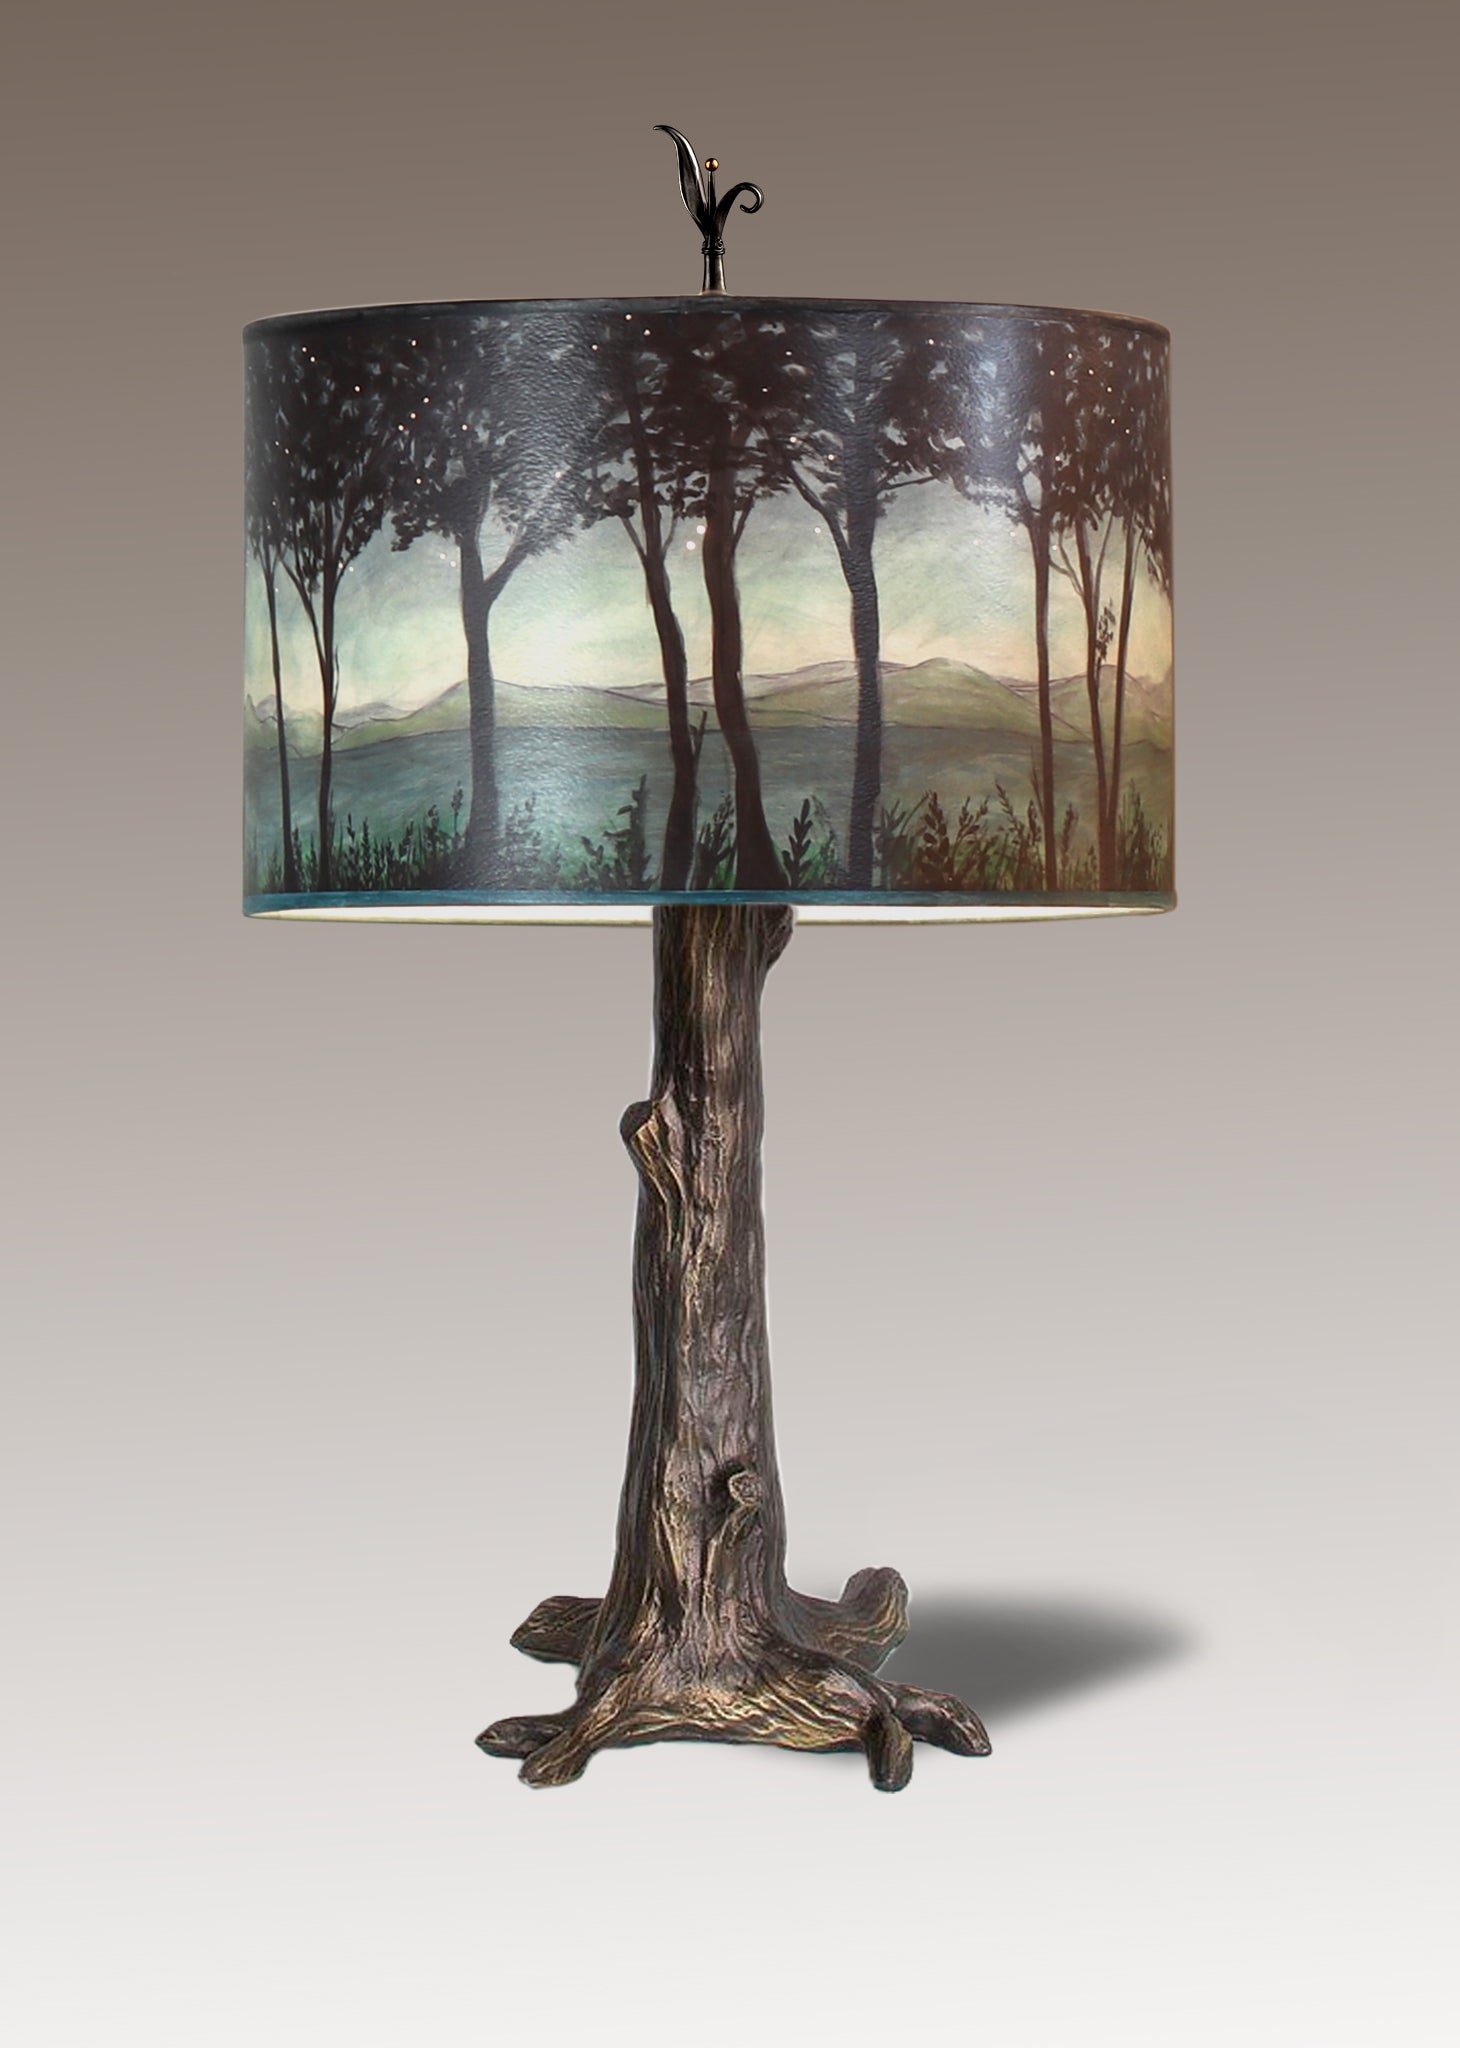 Bronze Tree Table Lamp With Large Drum Shade In Twilight Janna Ugone Co Wholesale